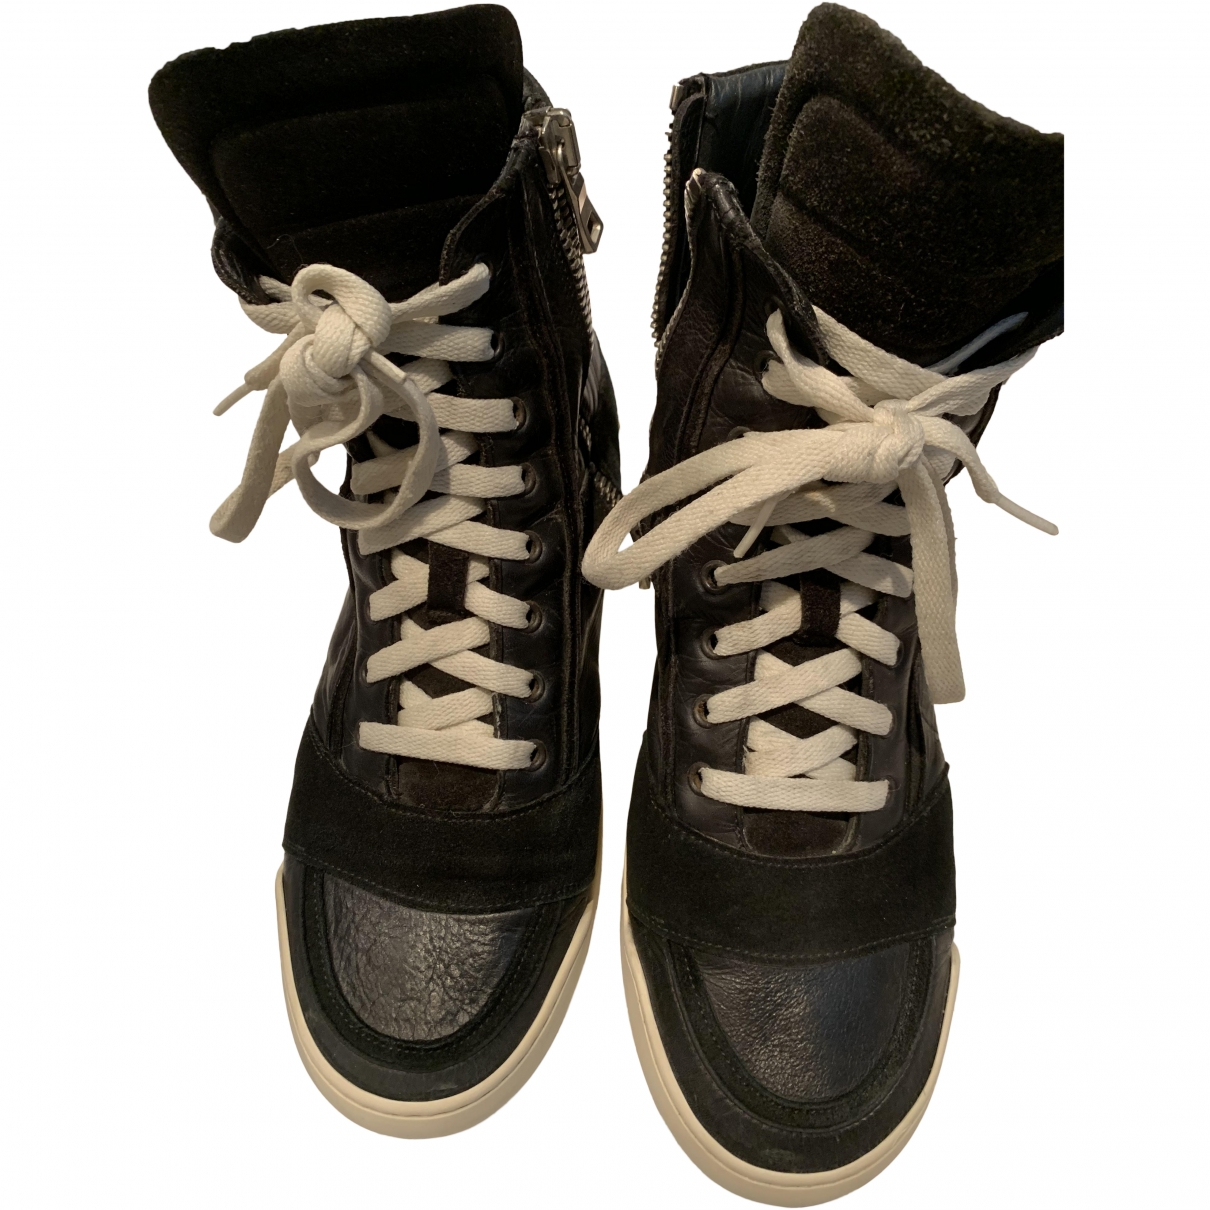 Balmain \N Black Leather Trainers for Men 42 EU